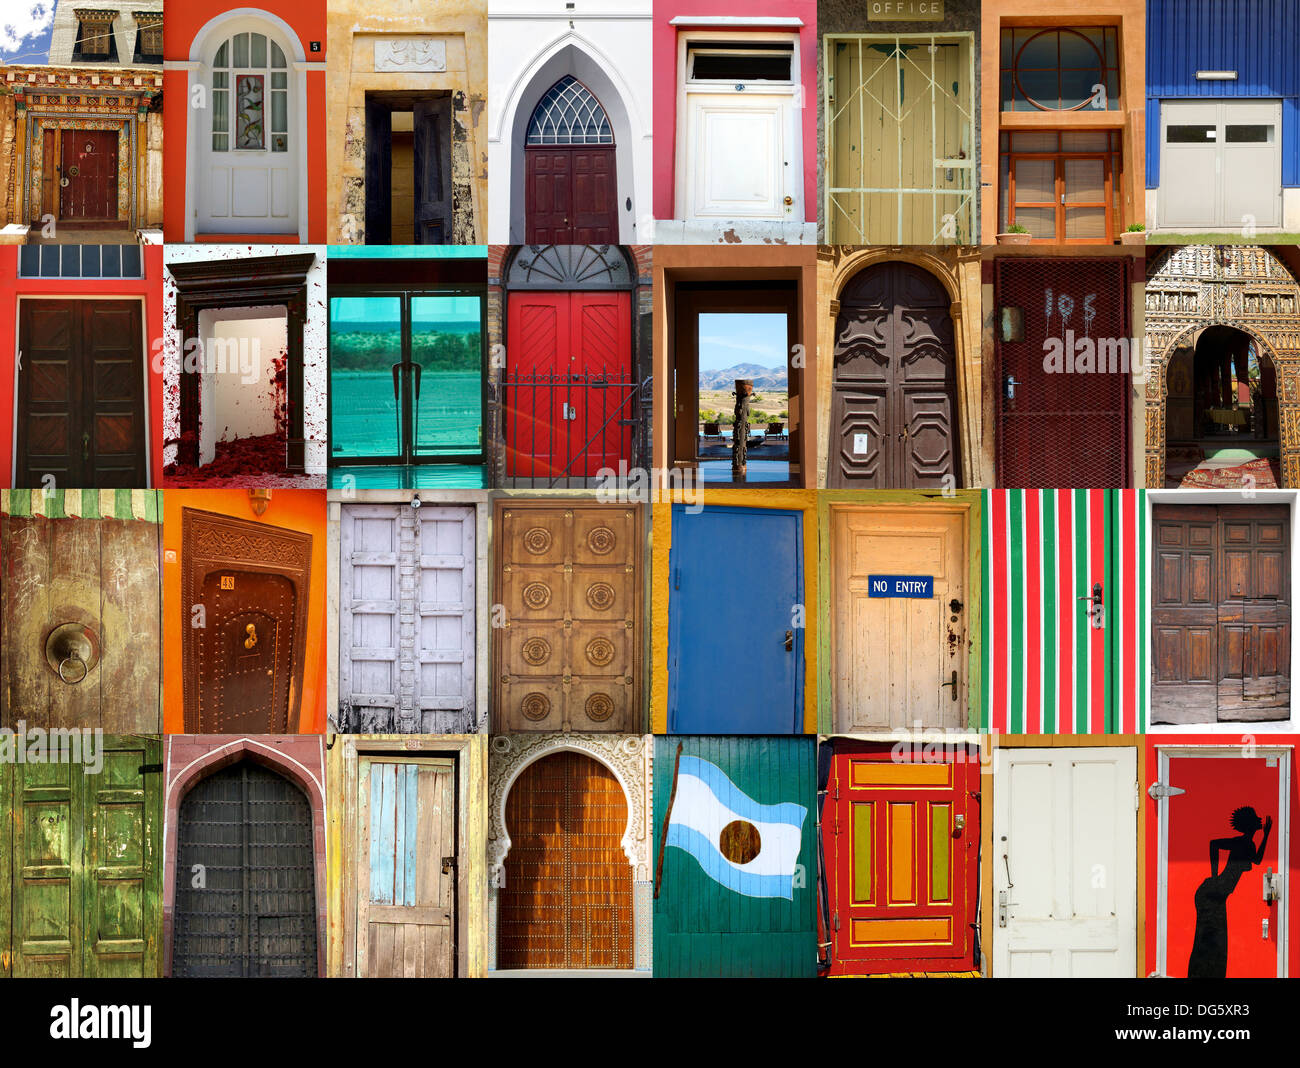 High-definition composition of 32 street doors in various locations of the world - Stock Image